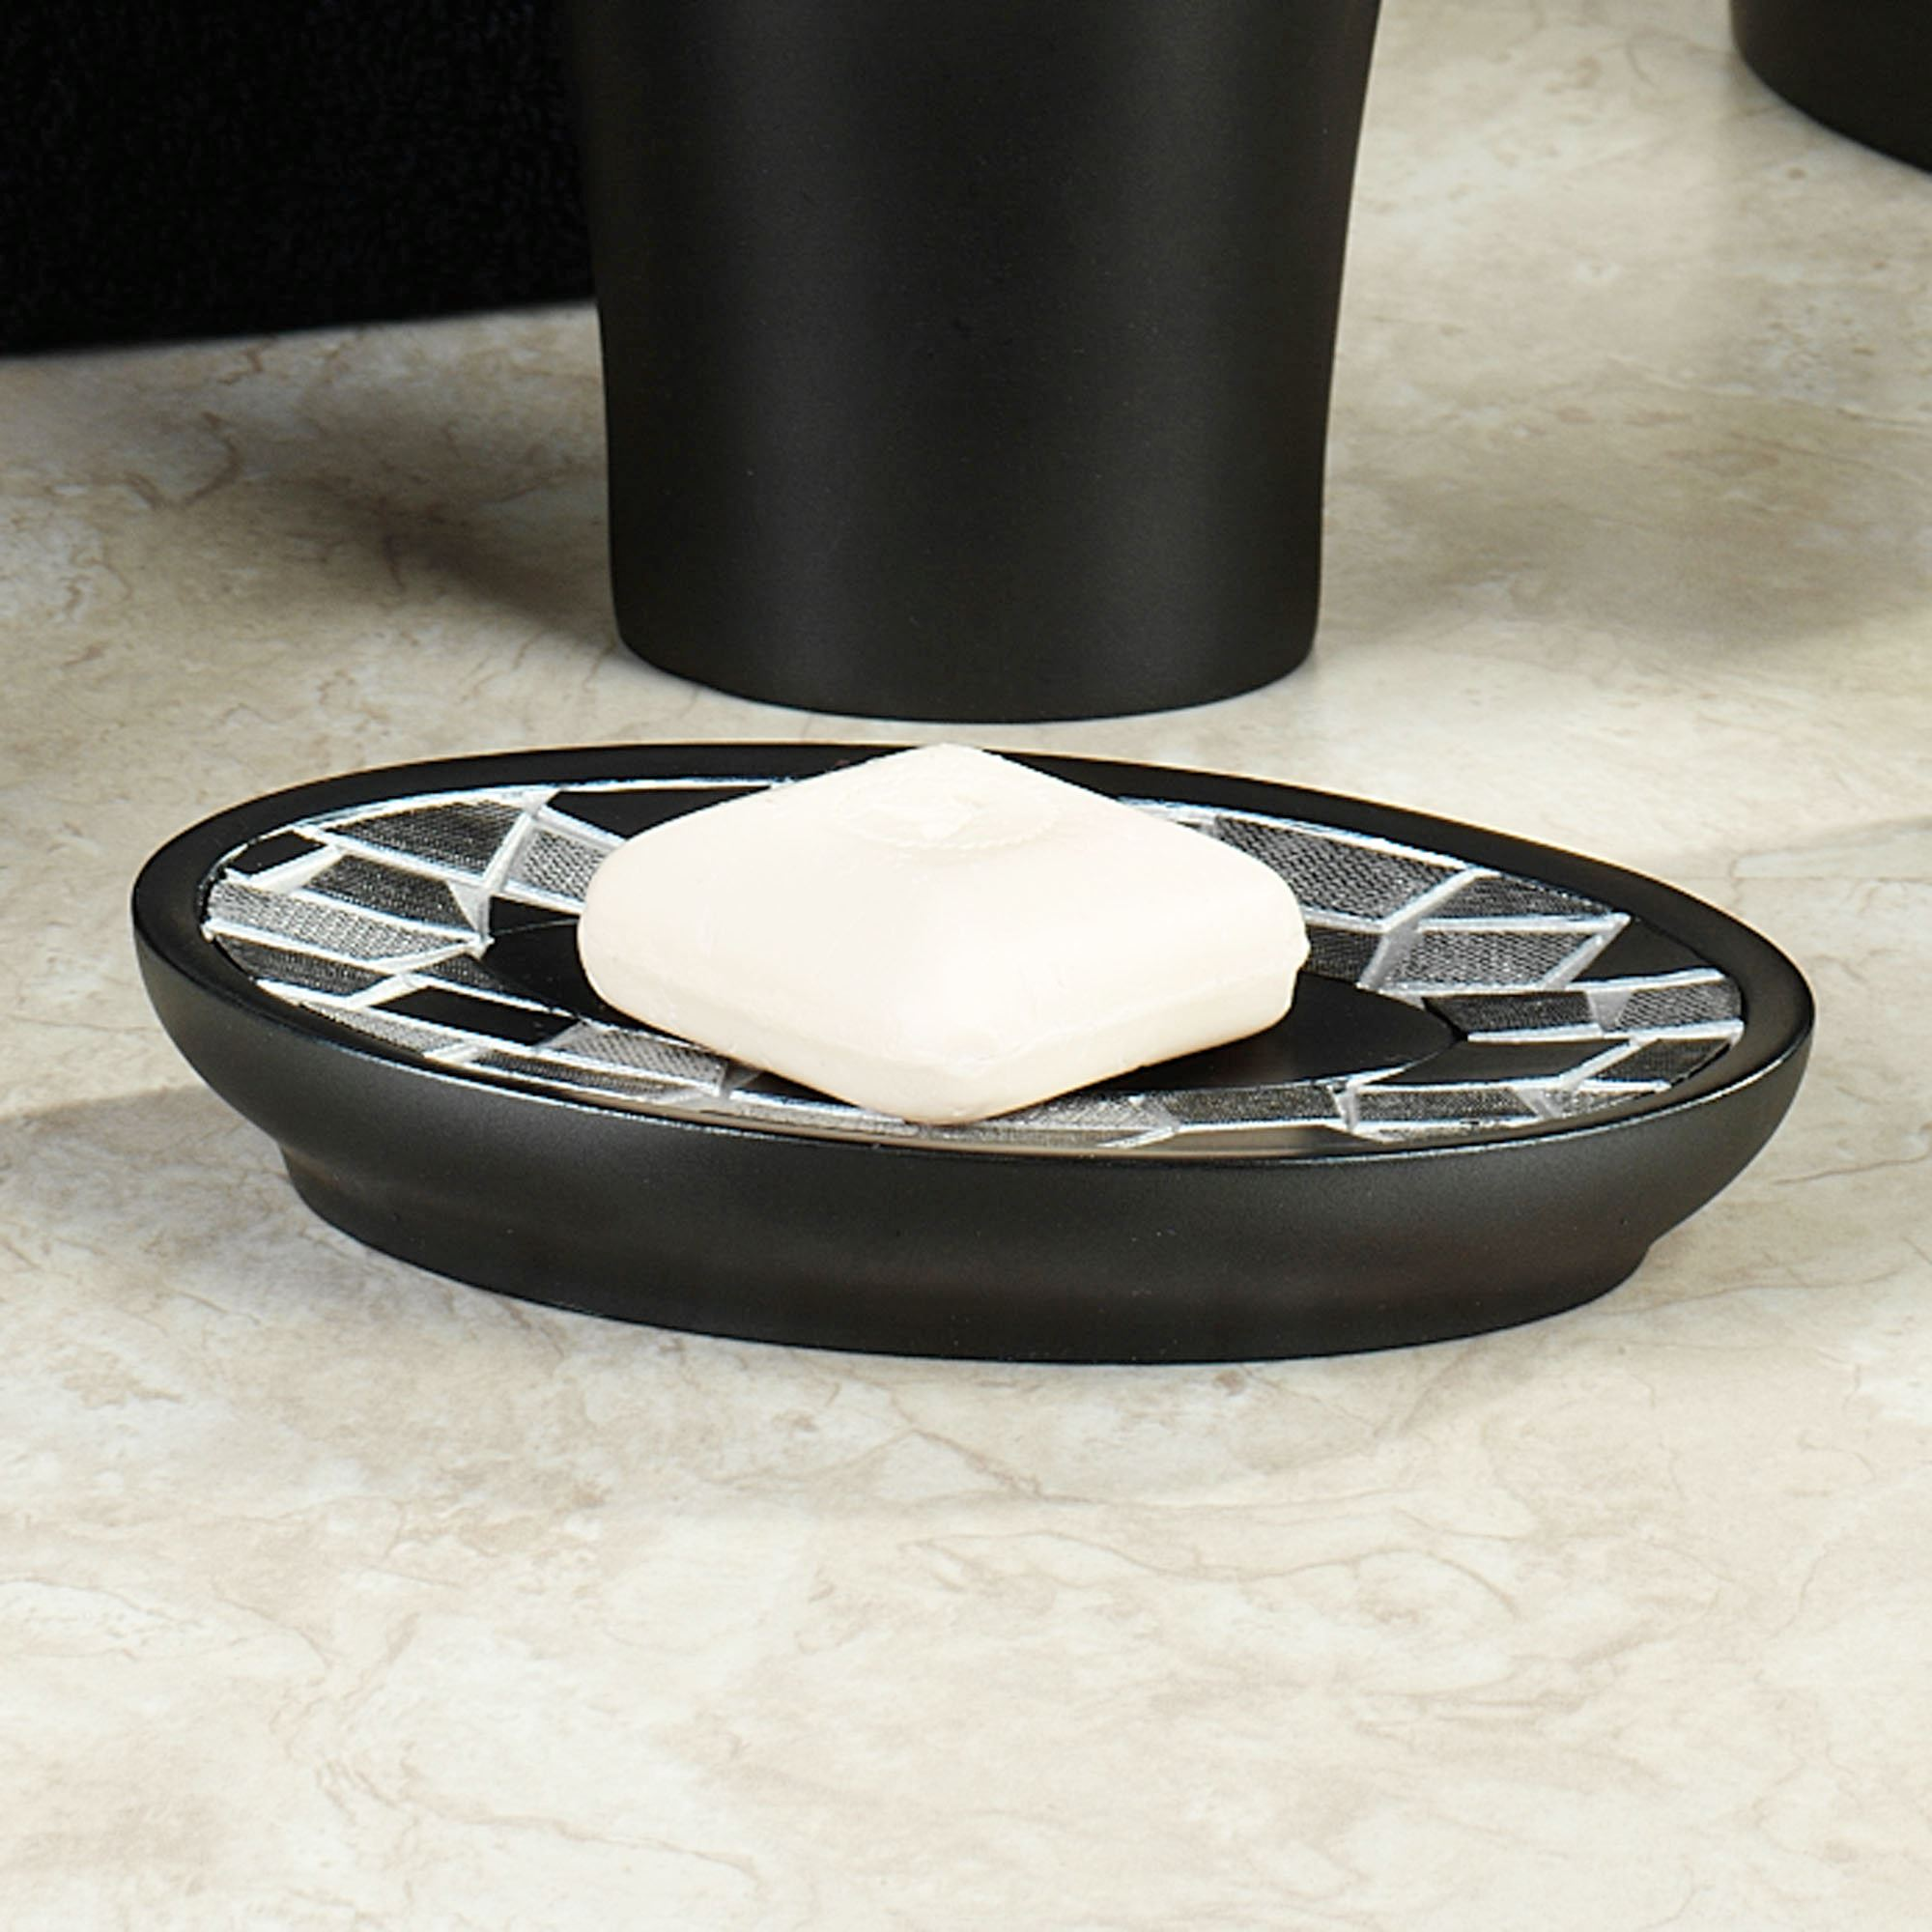 Black Mosaic Stone Soap Dish Resin Bath Accessories